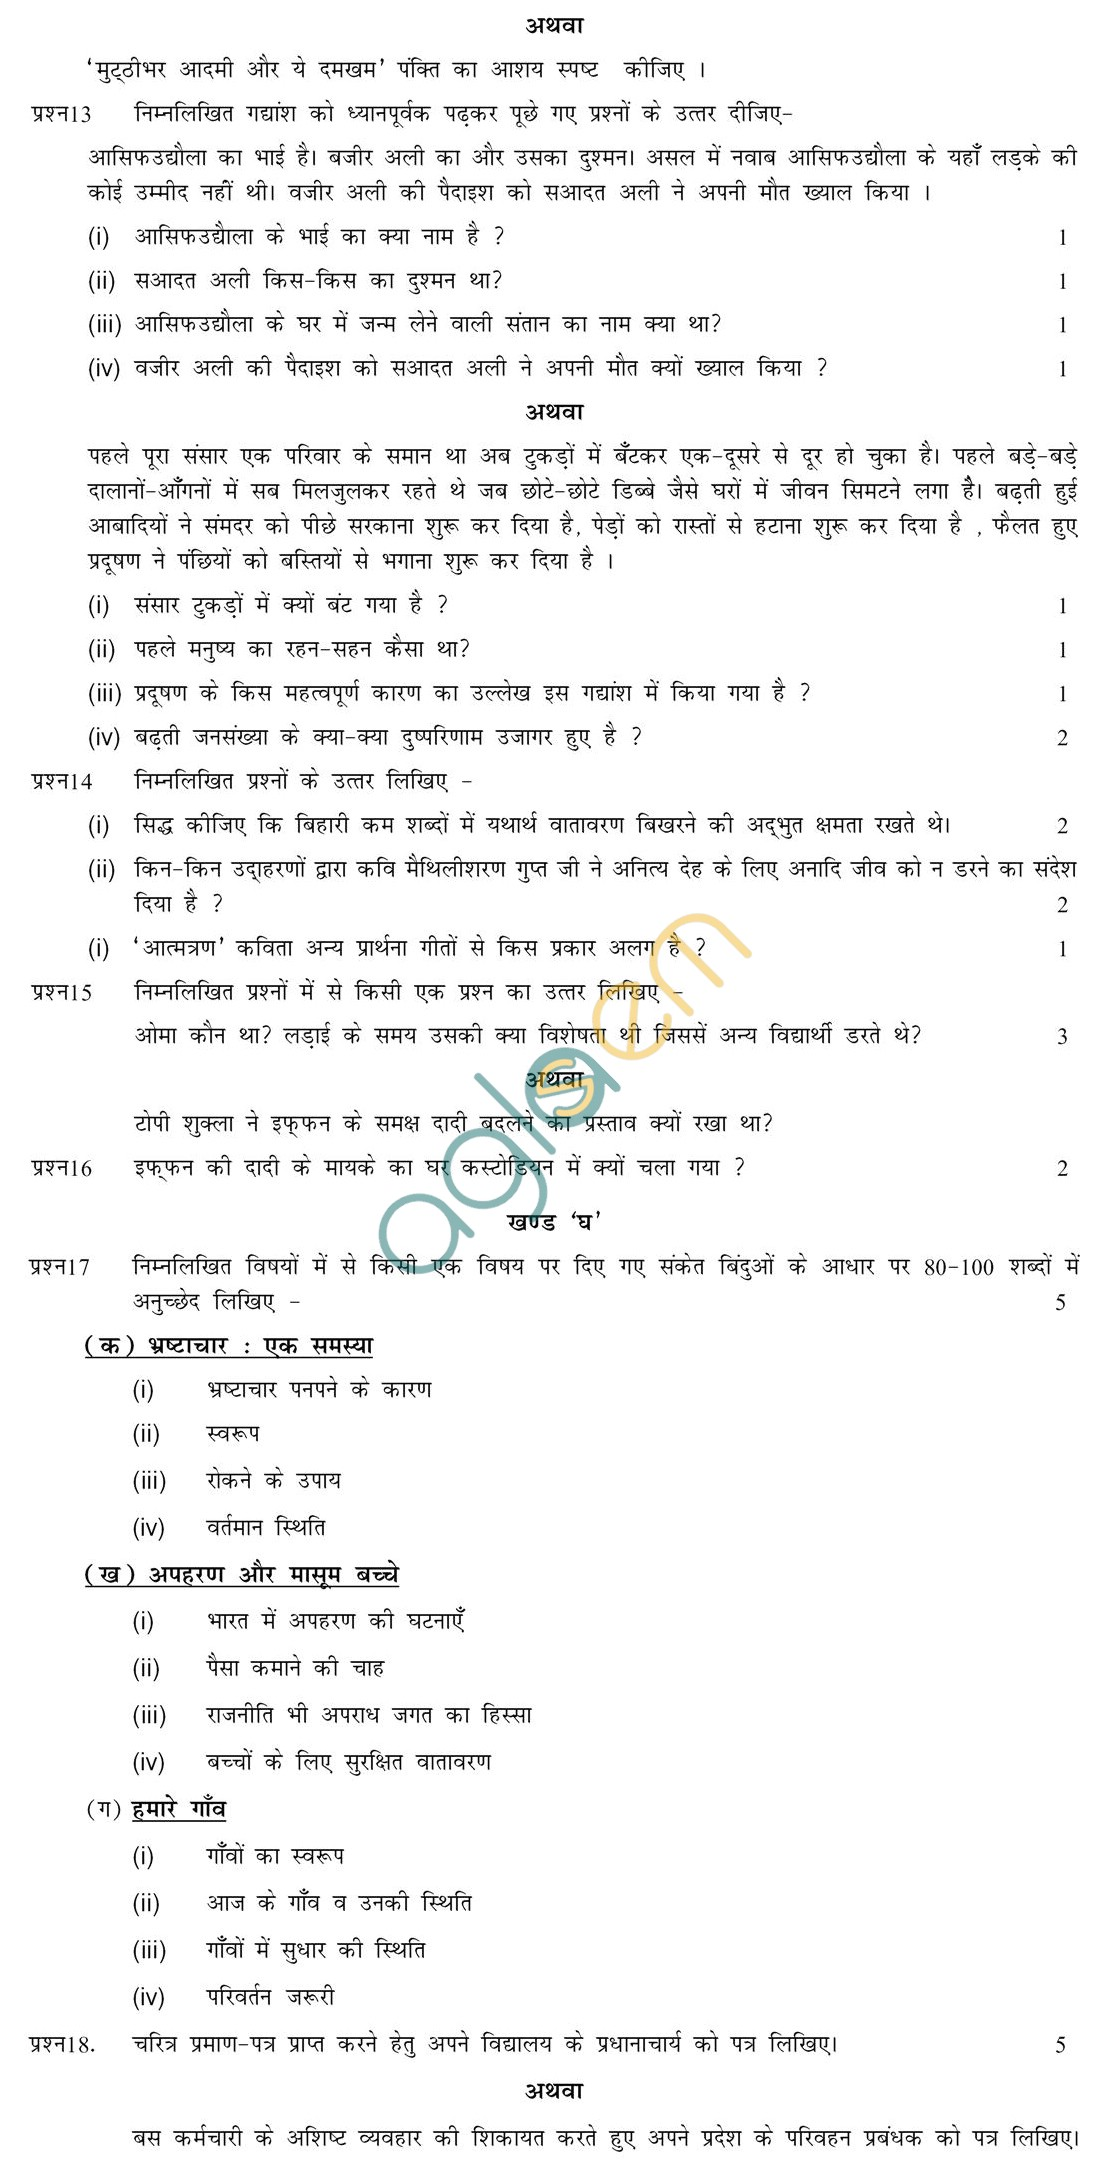 Download ICSE Sample Papers for Class 10 March 2019 Exams